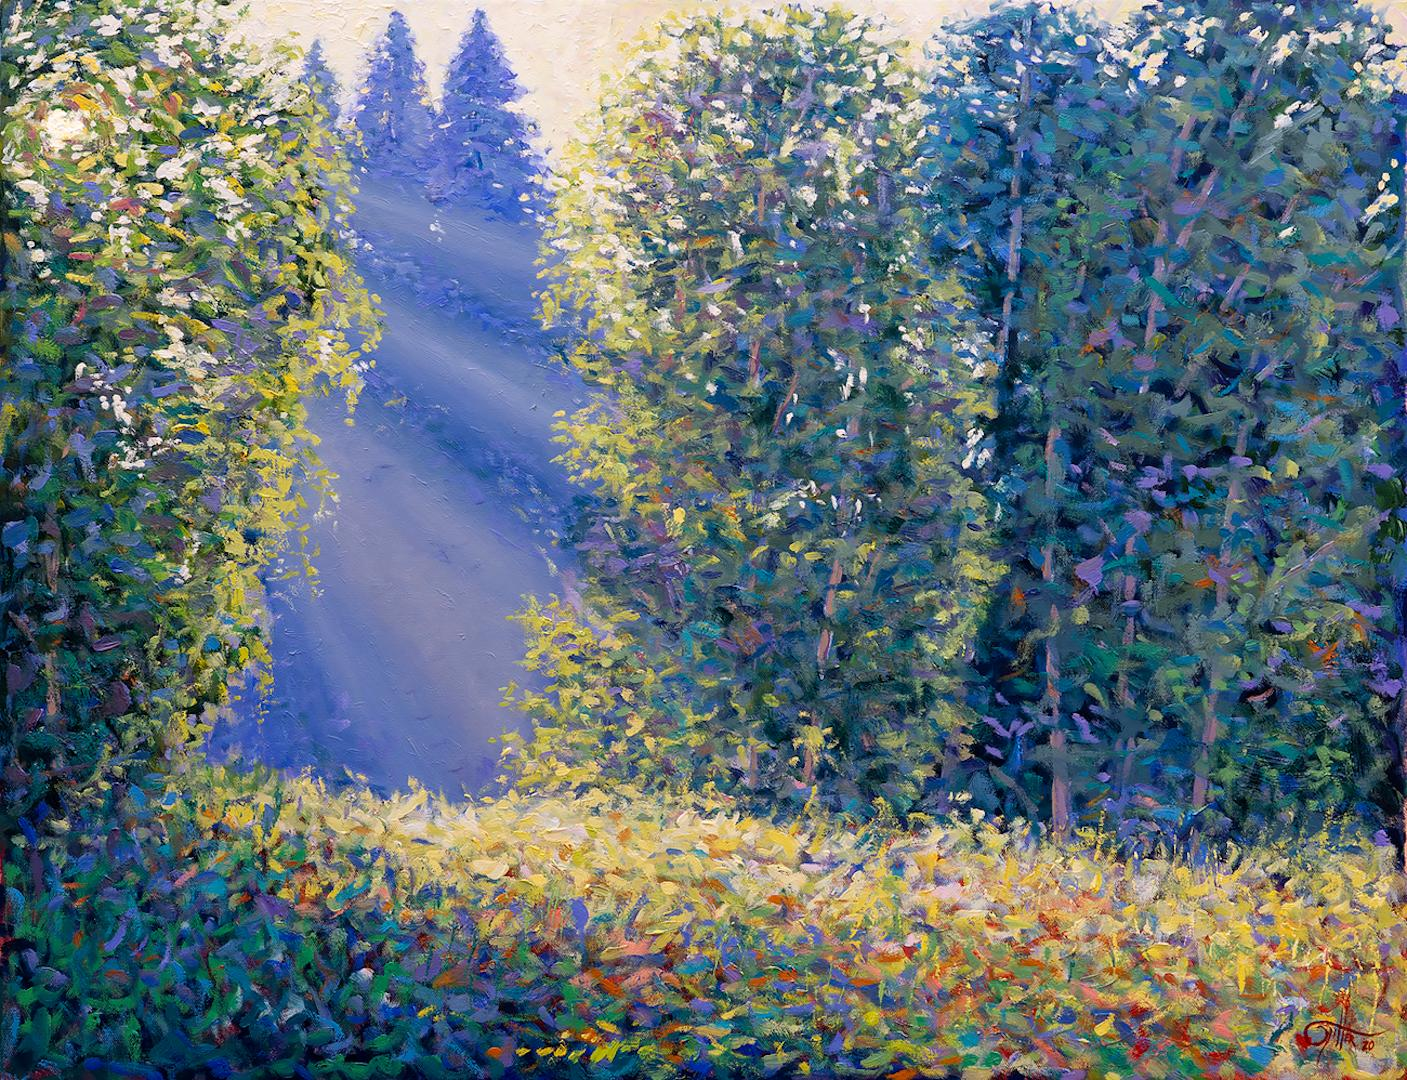 Lee Tiller, Listening to the Music of Bees, Contemporary Impressionist Painting